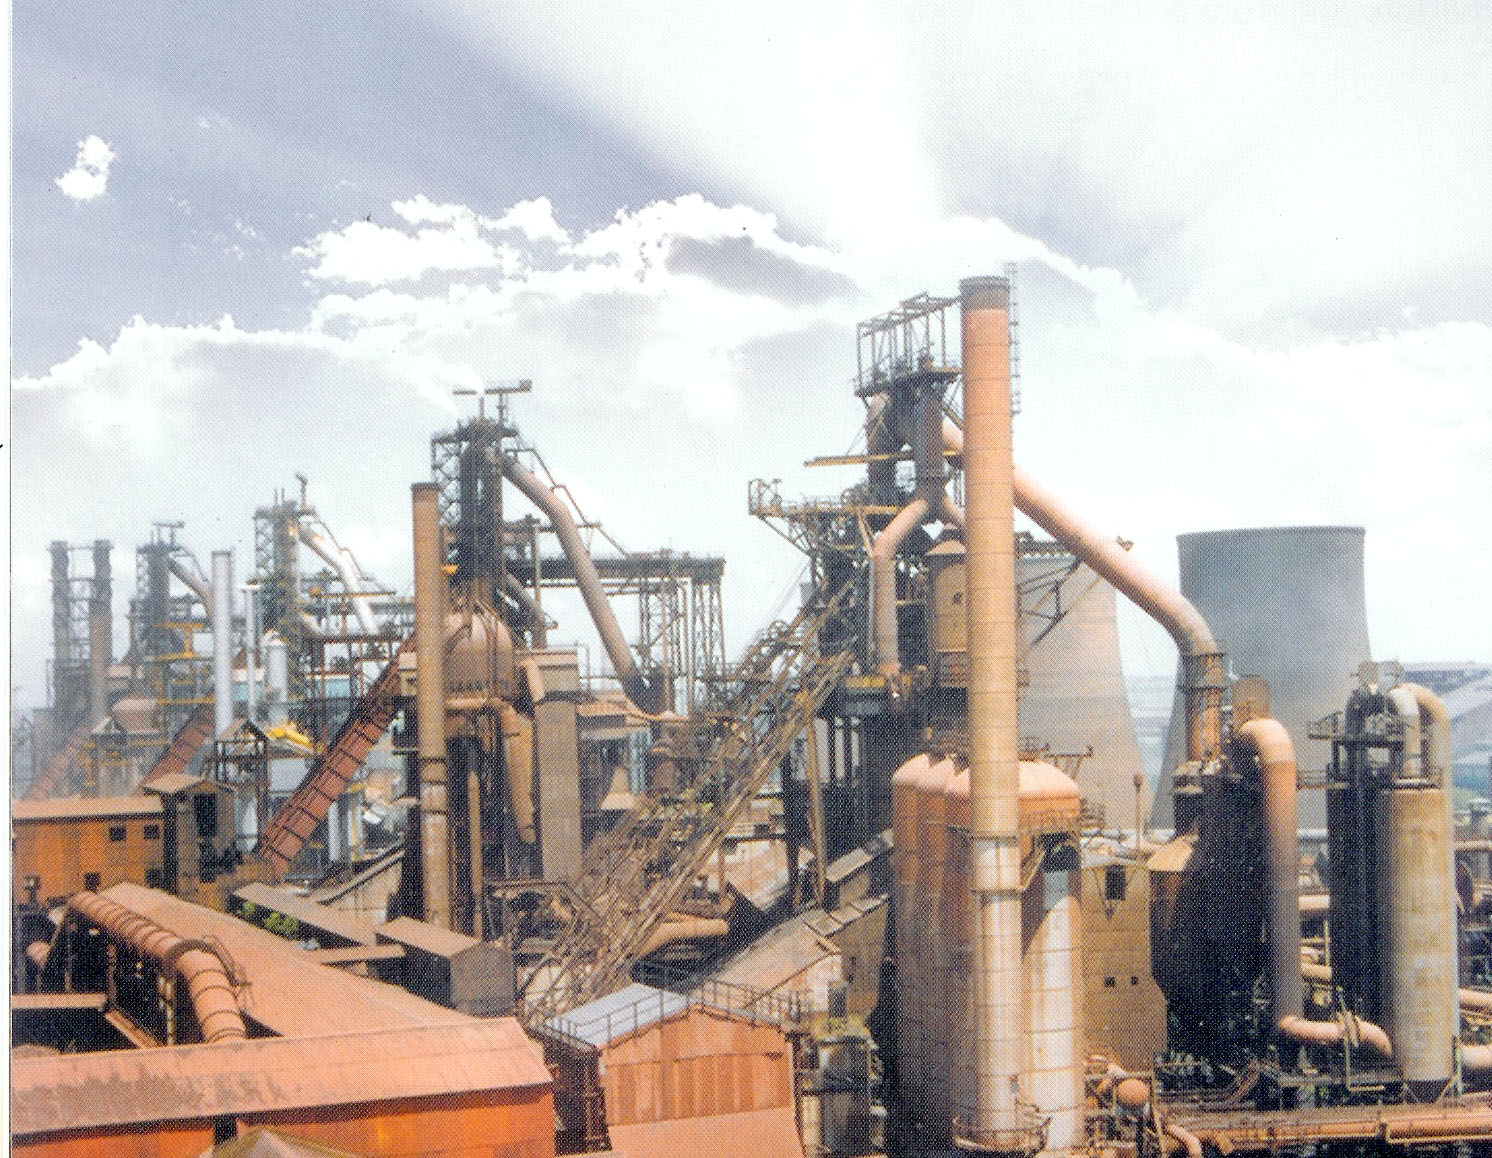 Durgapur India  city photos gallery : Steel Plants of India IMAGES VIDEOS